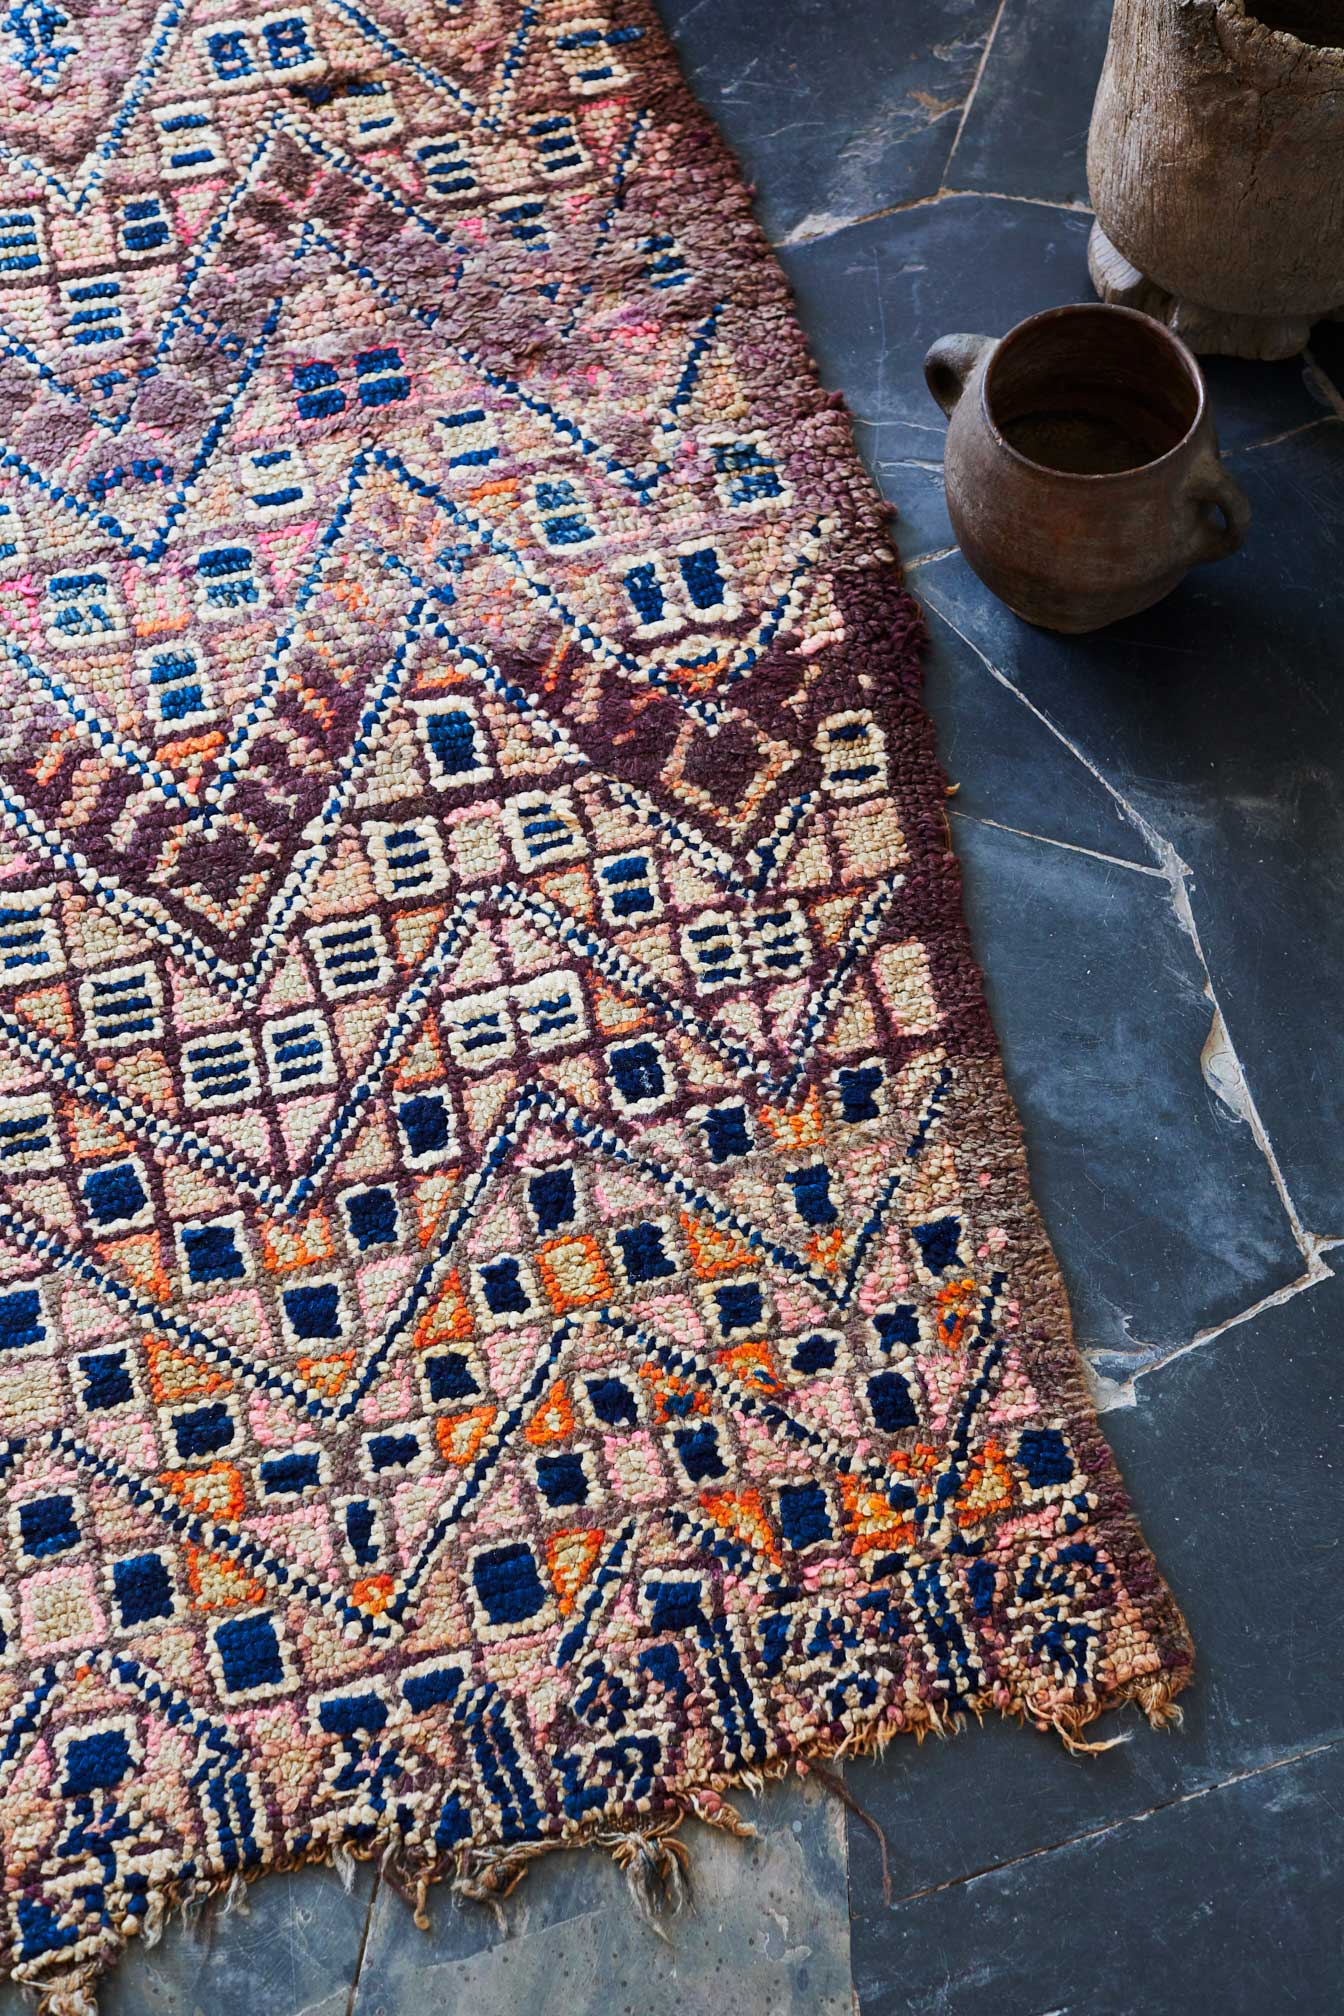 Tigmi Trading Rug Collection Shot Inside Studio KO's Villa E in Morocco | Yellowtrace